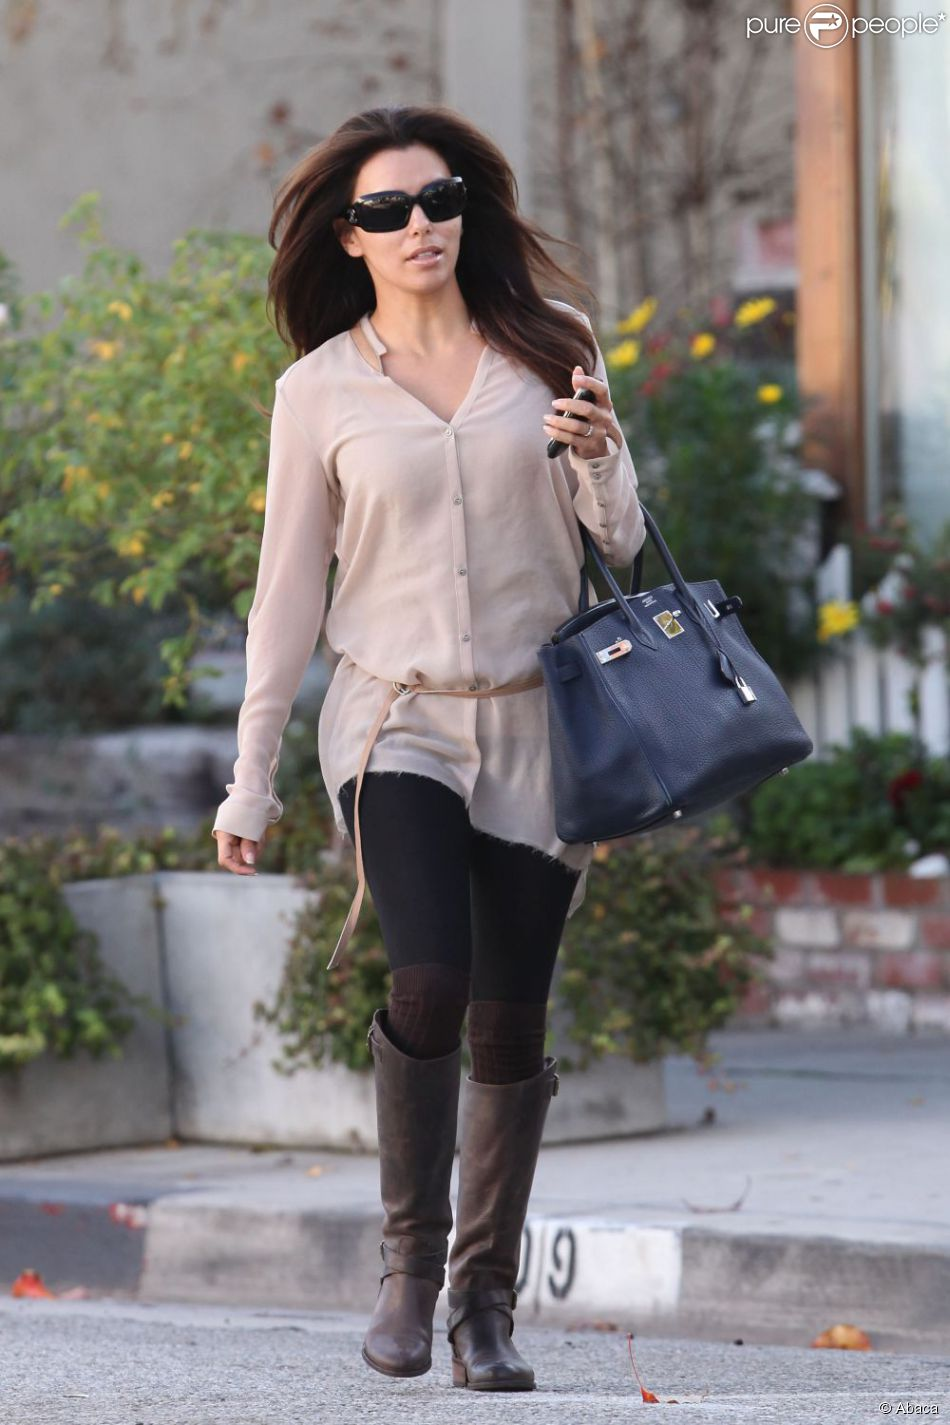 eva longoria dans un look d contract chic los angeles le 20 d cembre 2011. Black Bedroom Furniture Sets. Home Design Ideas